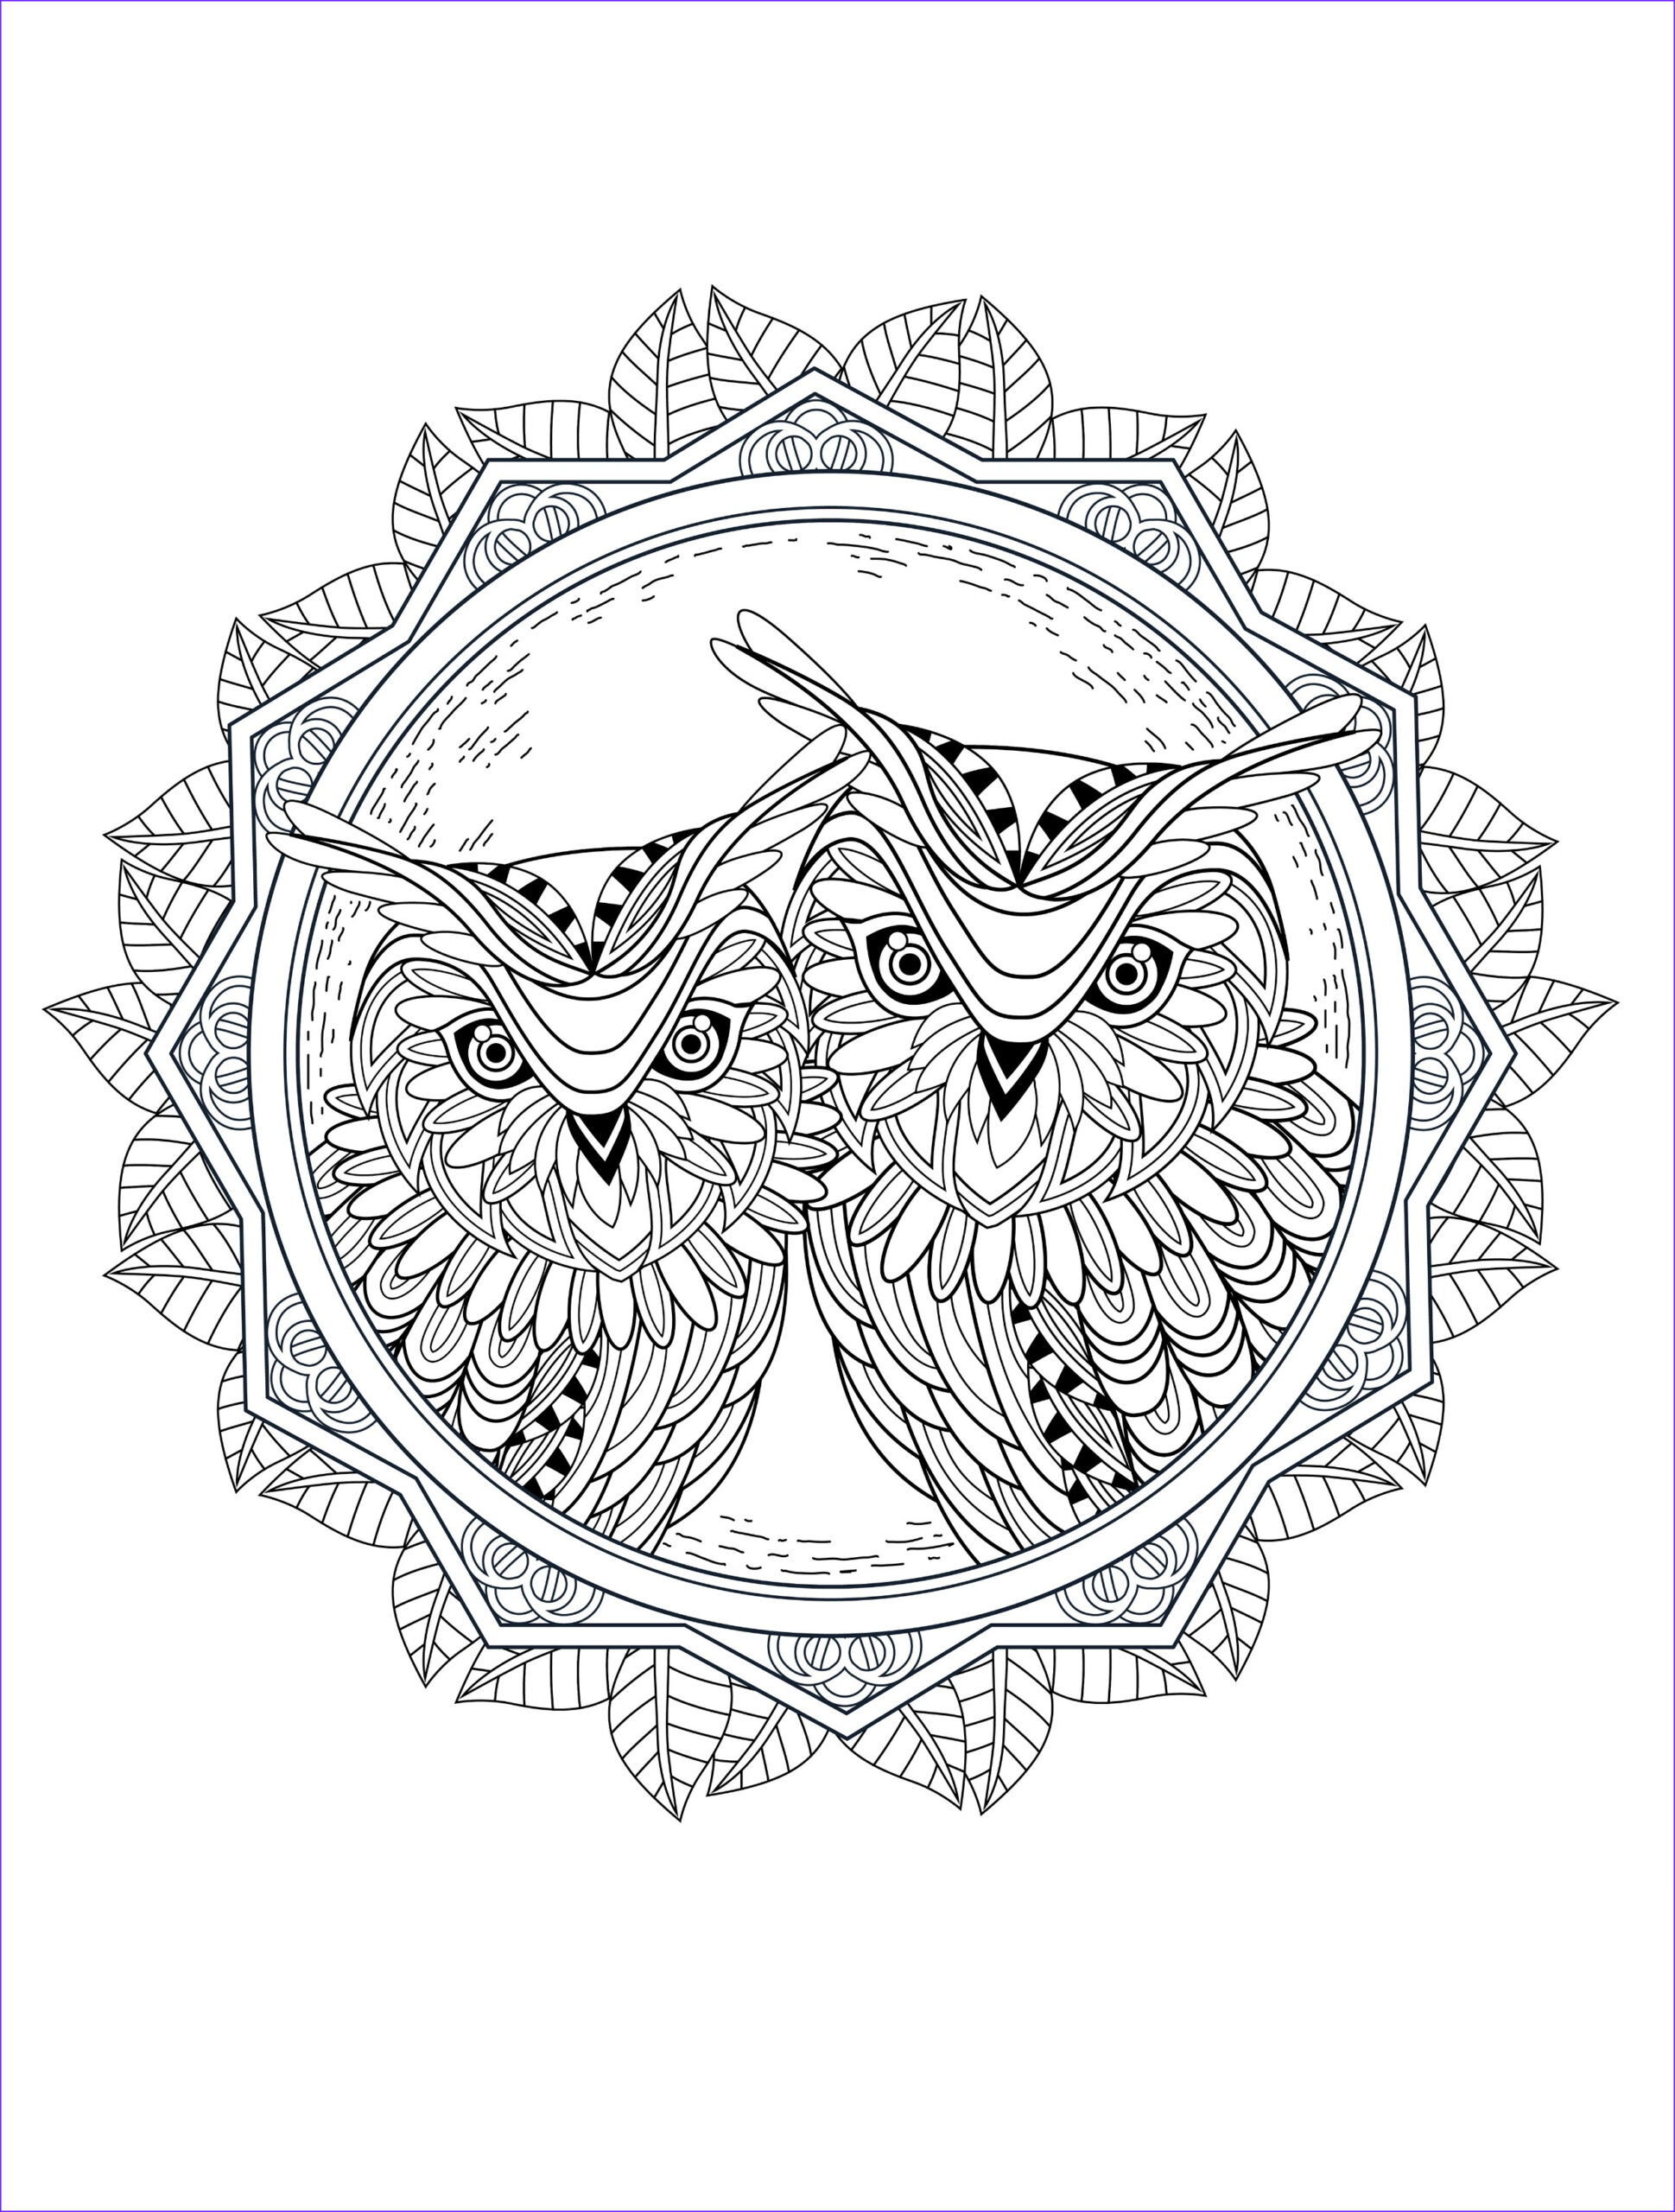 Coloring Pages Printable Adults Beautiful Gallery Owl Coloring Pages for Adults Free Detailed Owl Coloring